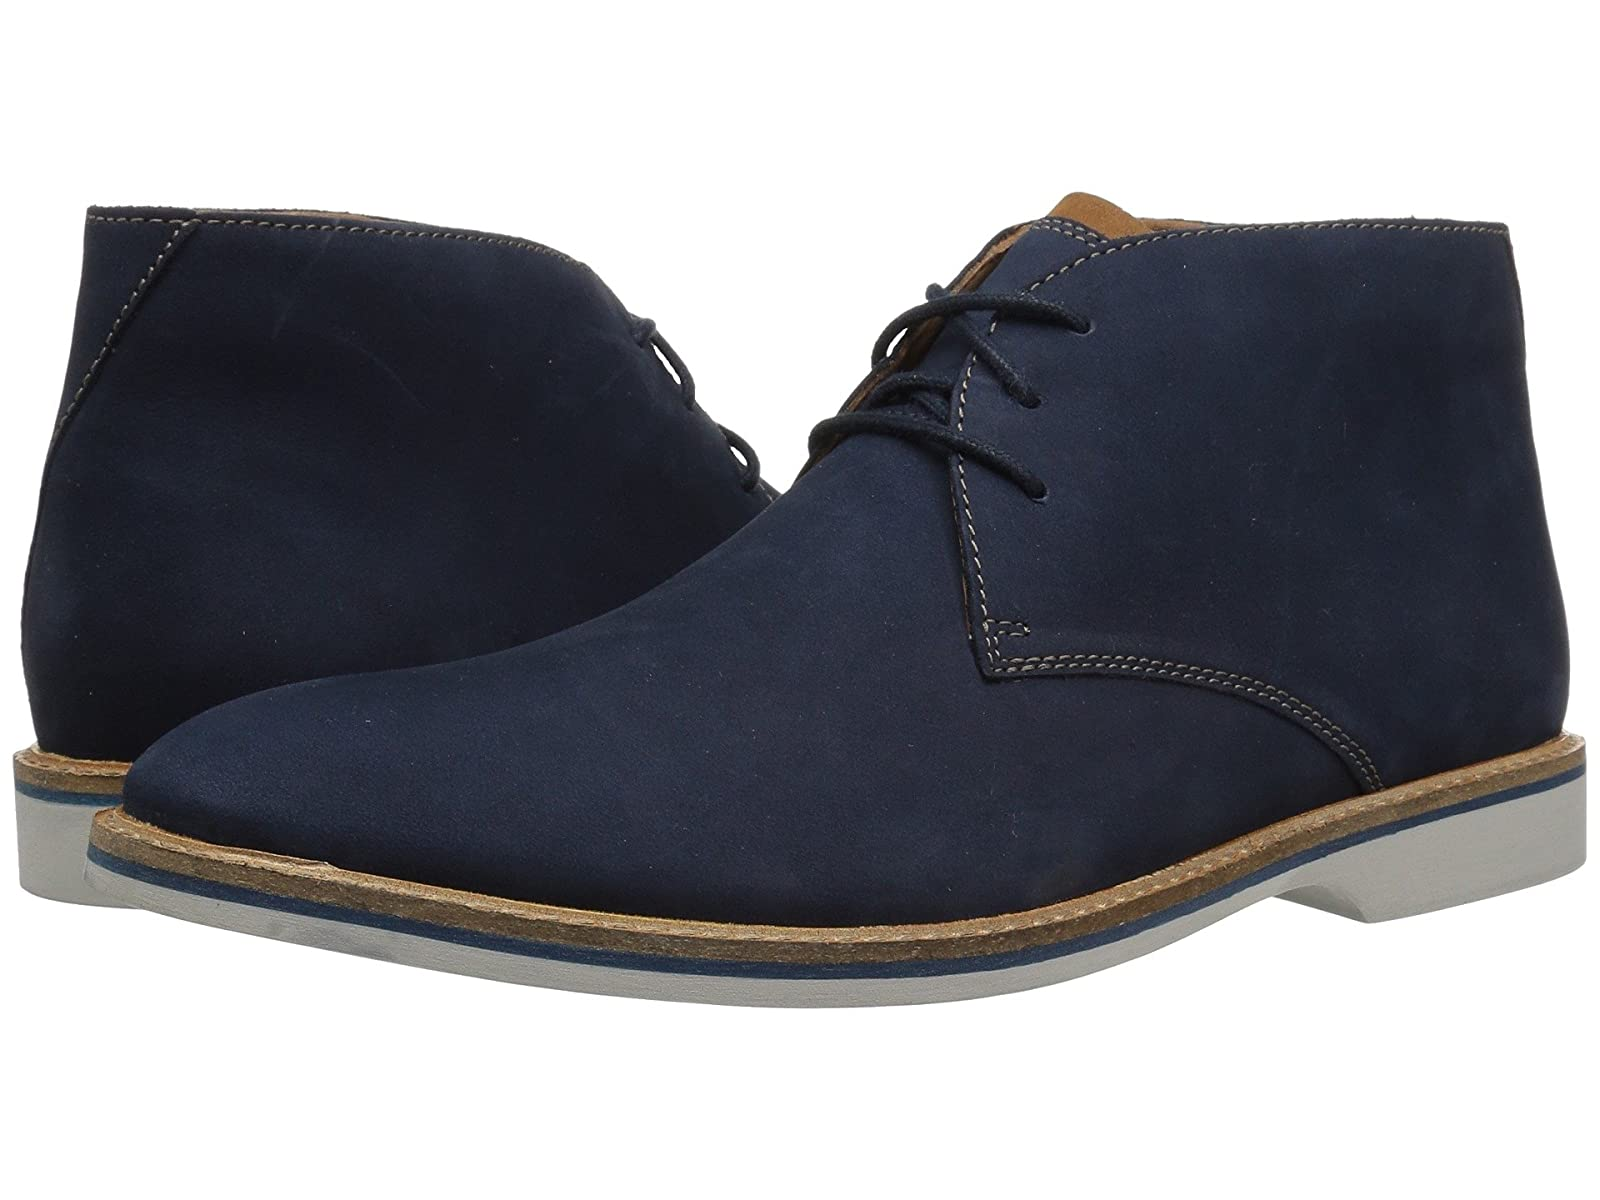 Clarks Atticus LimitCheap and distinctive eye-catching shoes